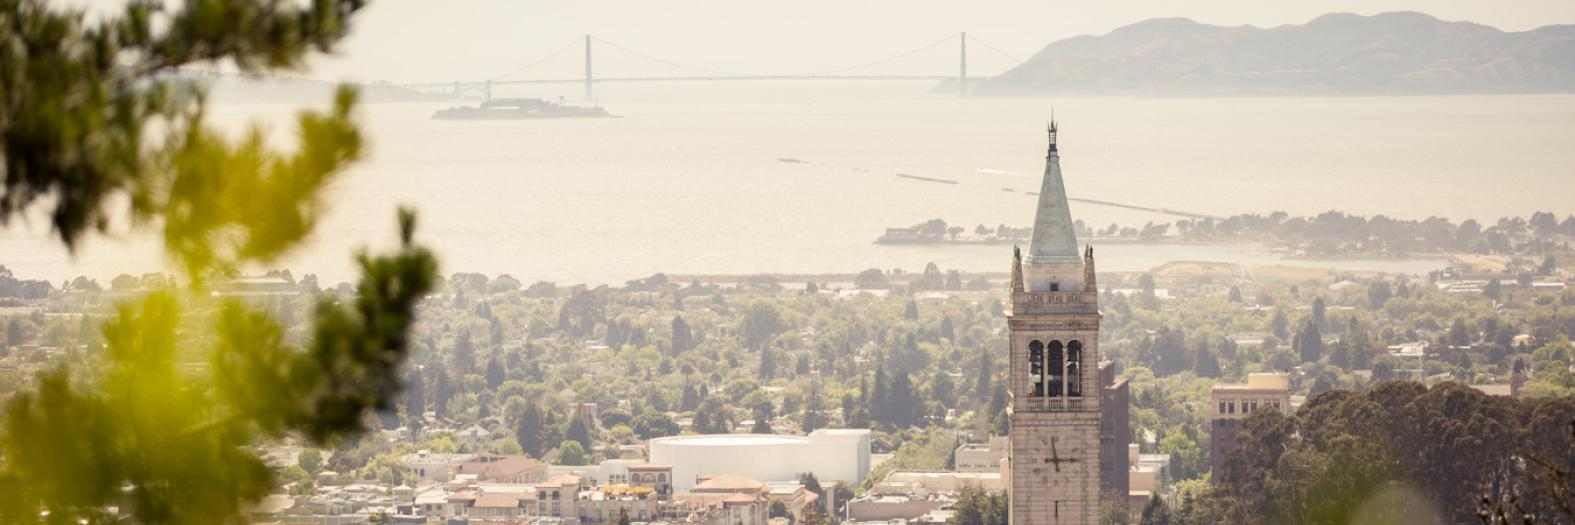 View of bay and campus, campanile